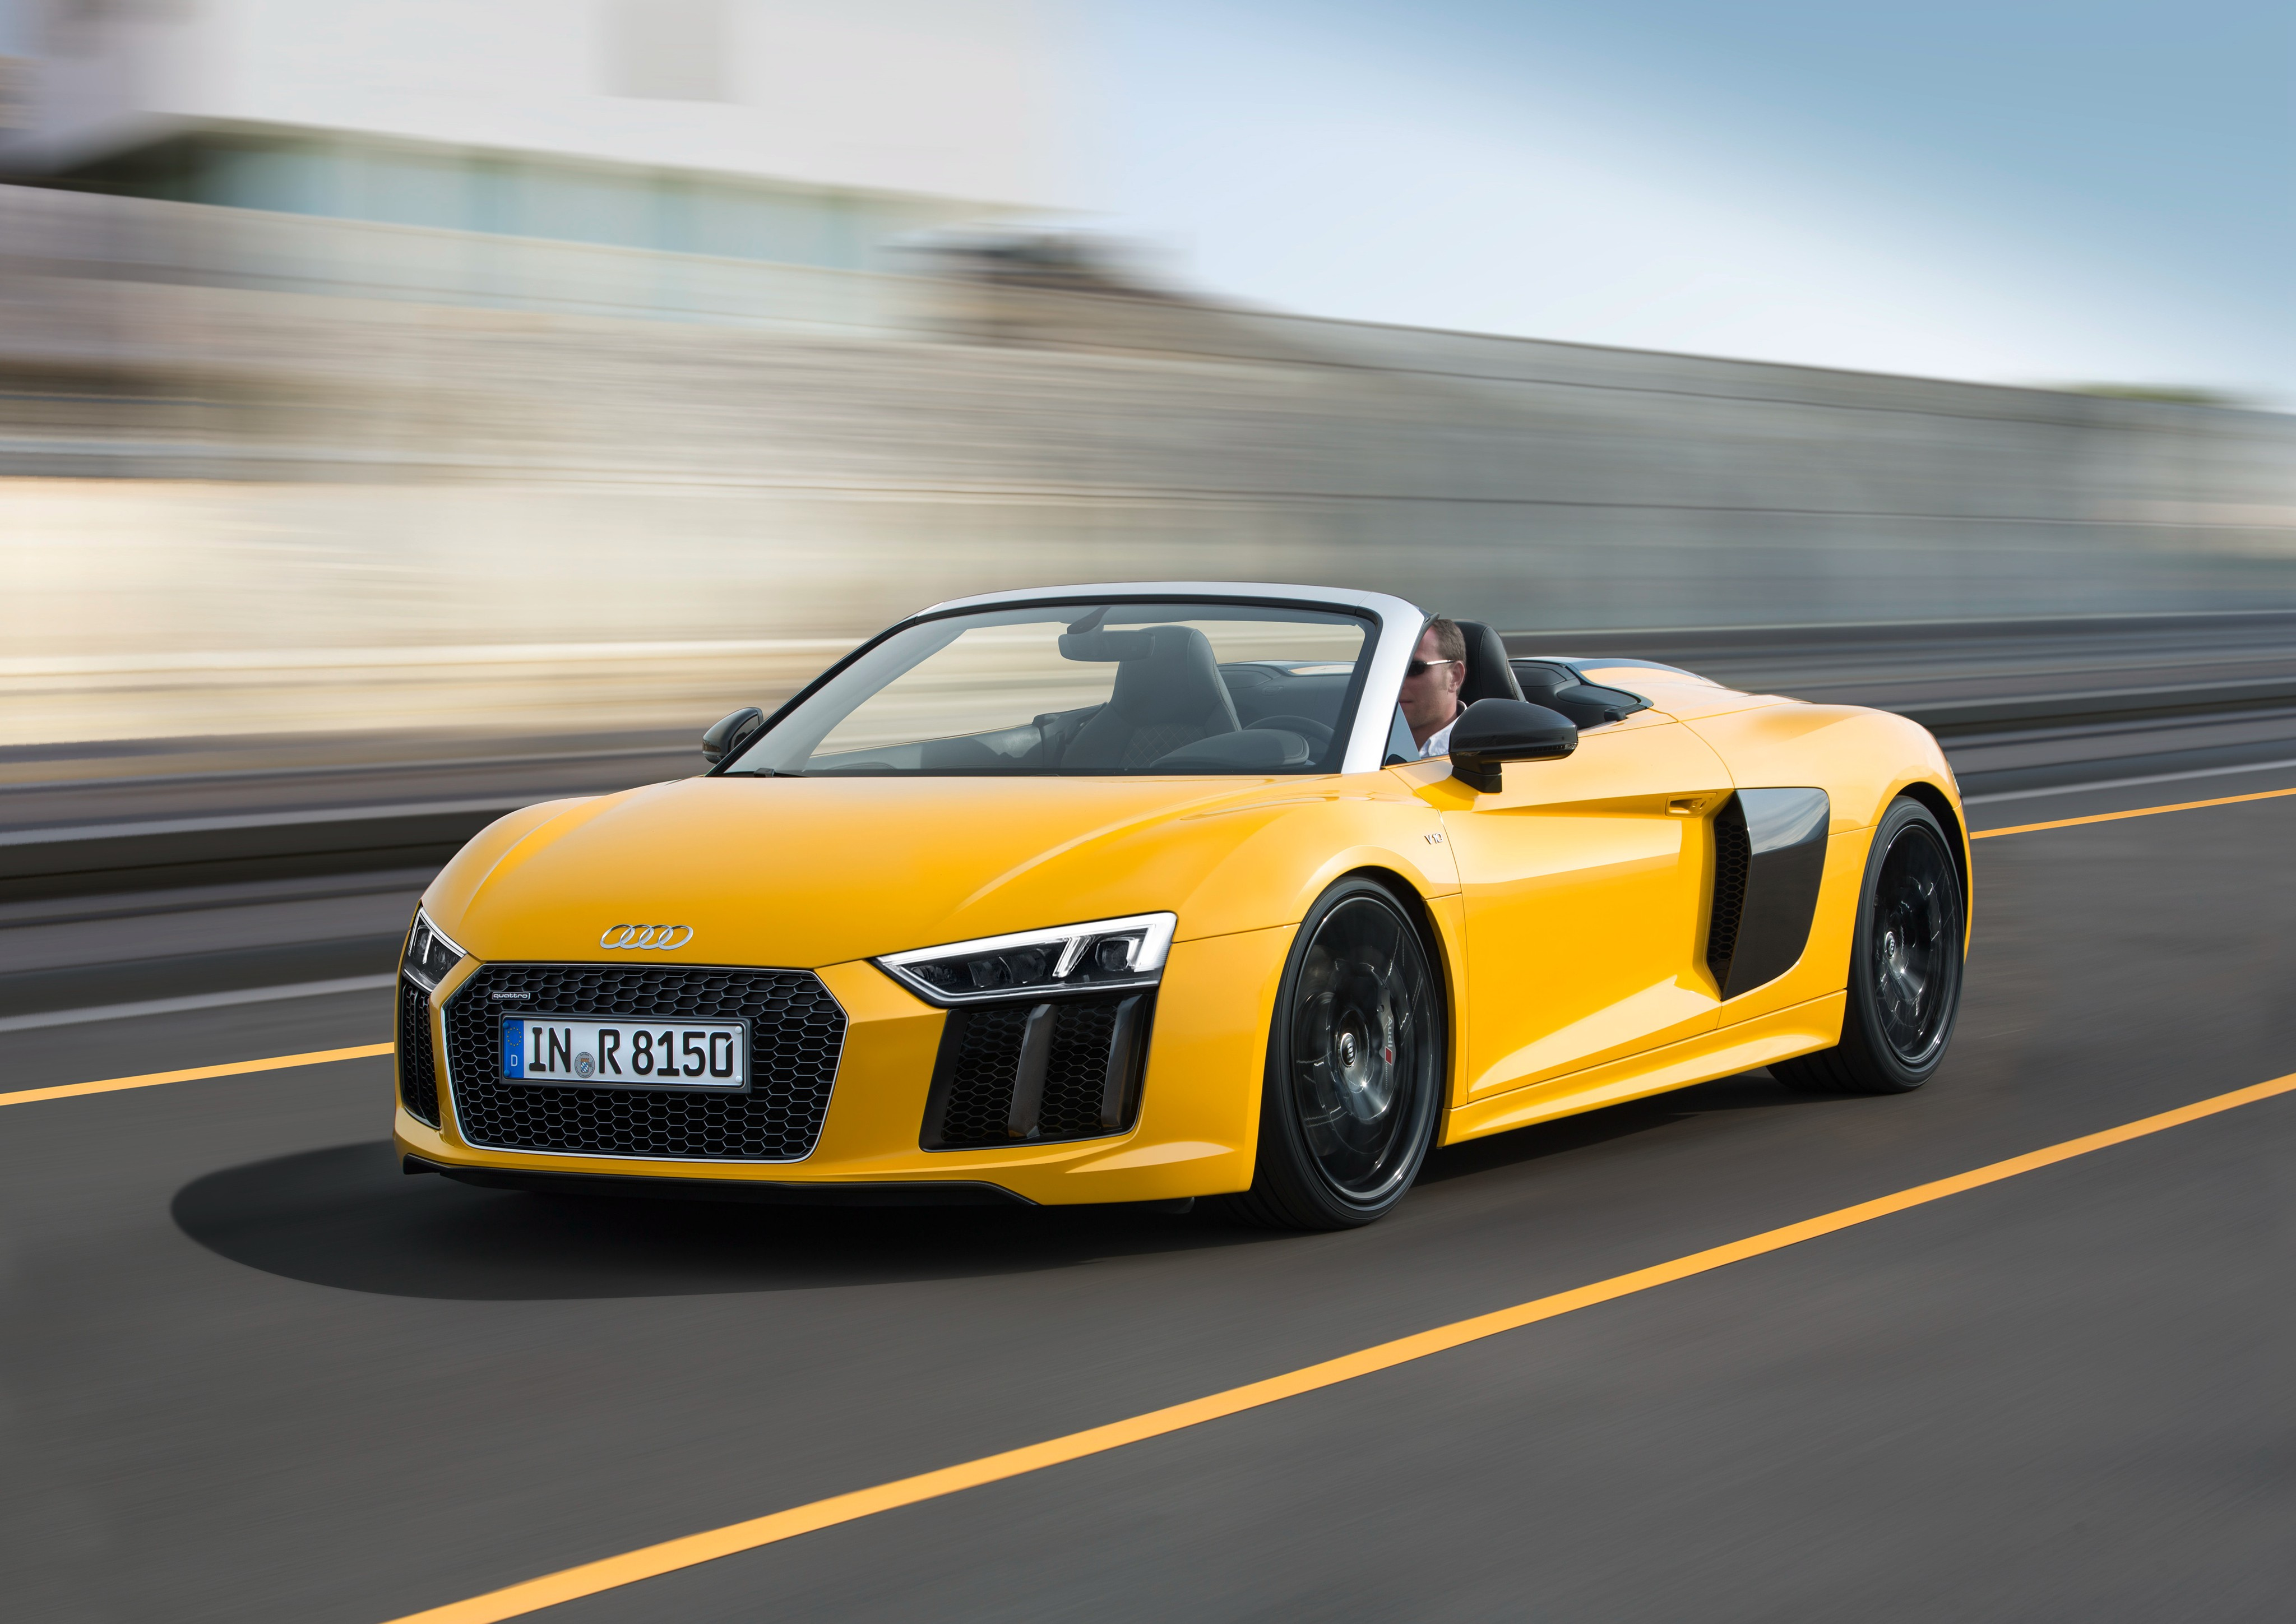 2017 Audi R8 Spyder Price Set From €179,000 in Germany - autoevolution